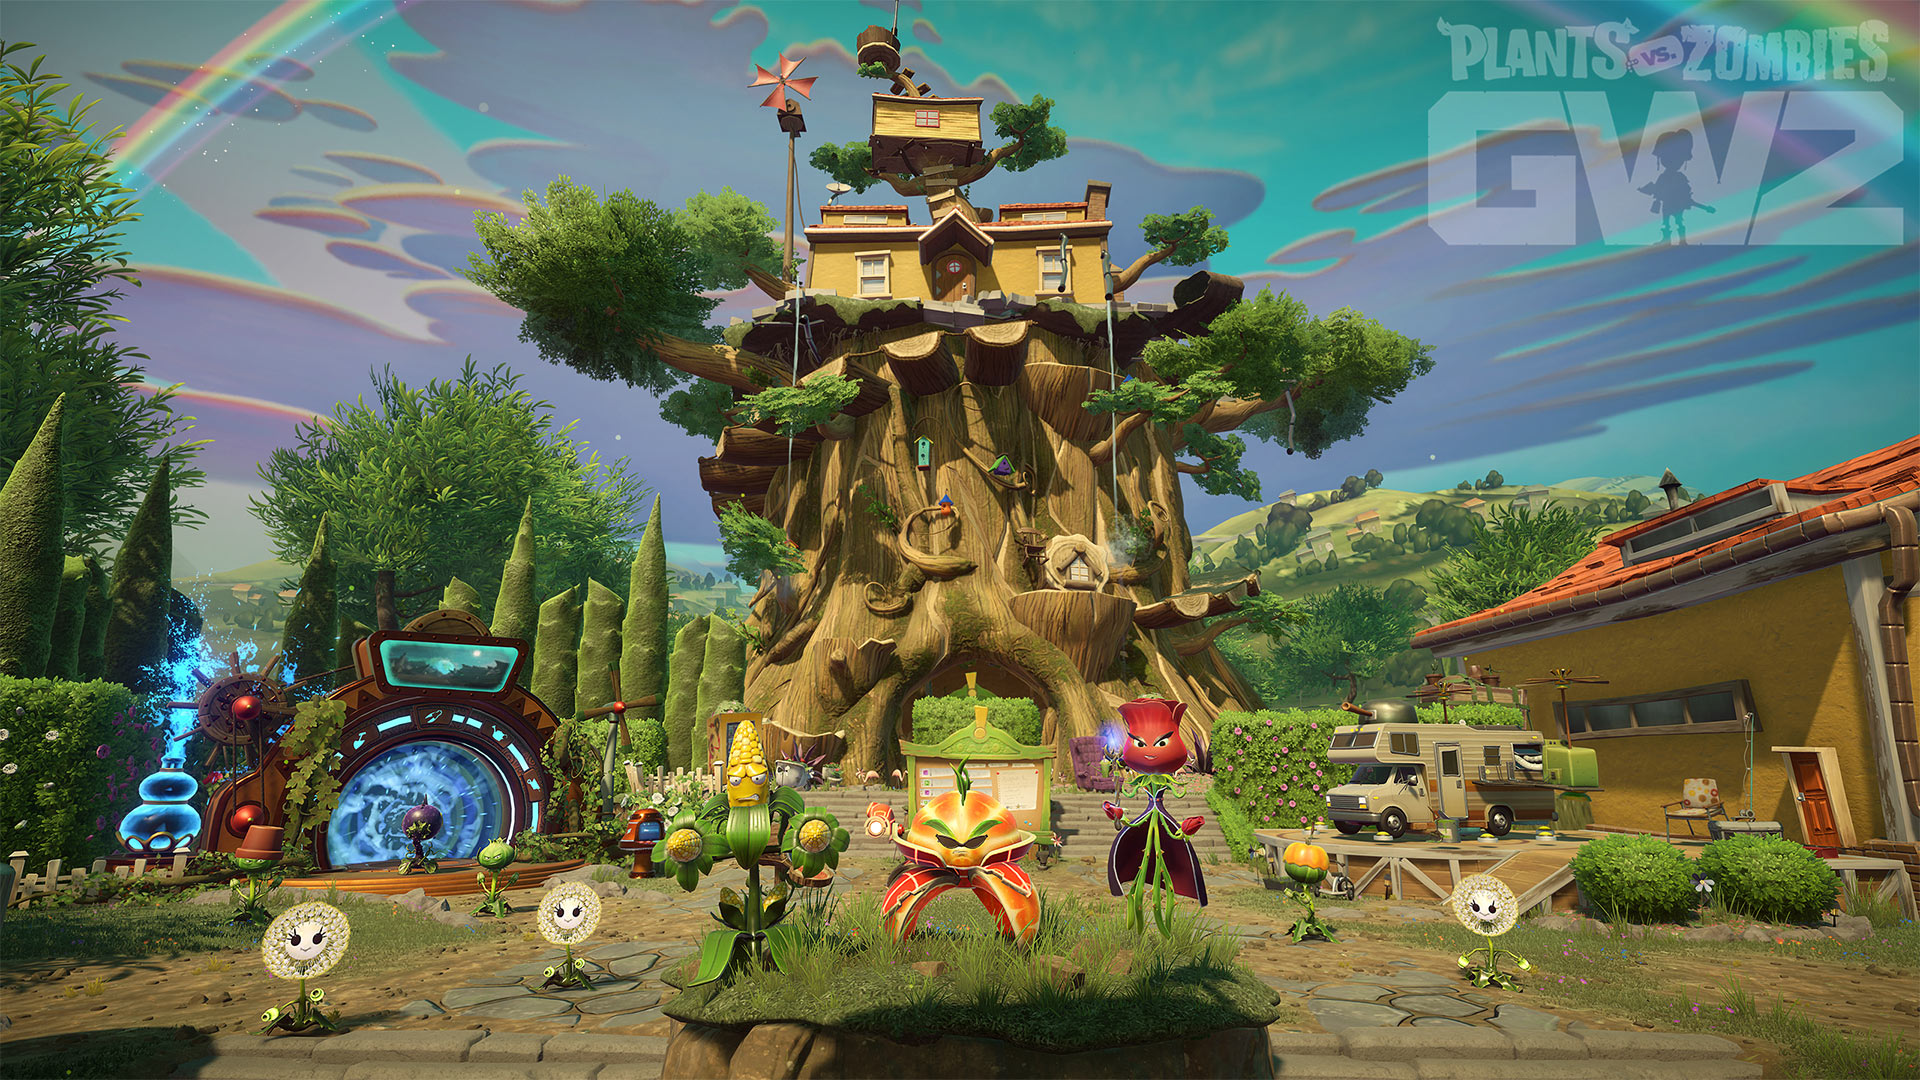 Plants vs Zombies E3 2018 Screenshot